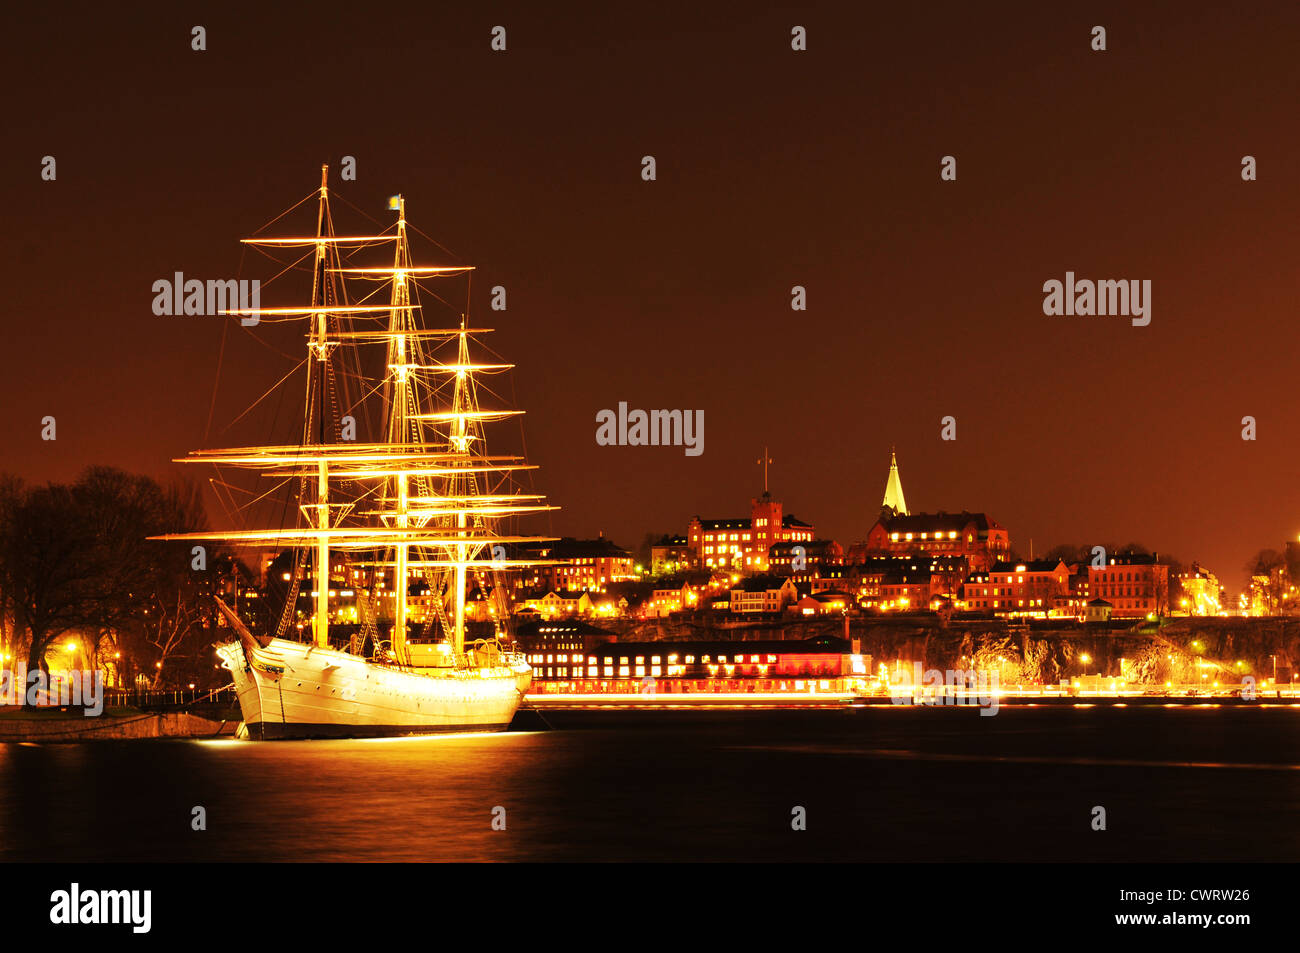 Ship anchored in Stockholm, Sweden at night - Stock Image